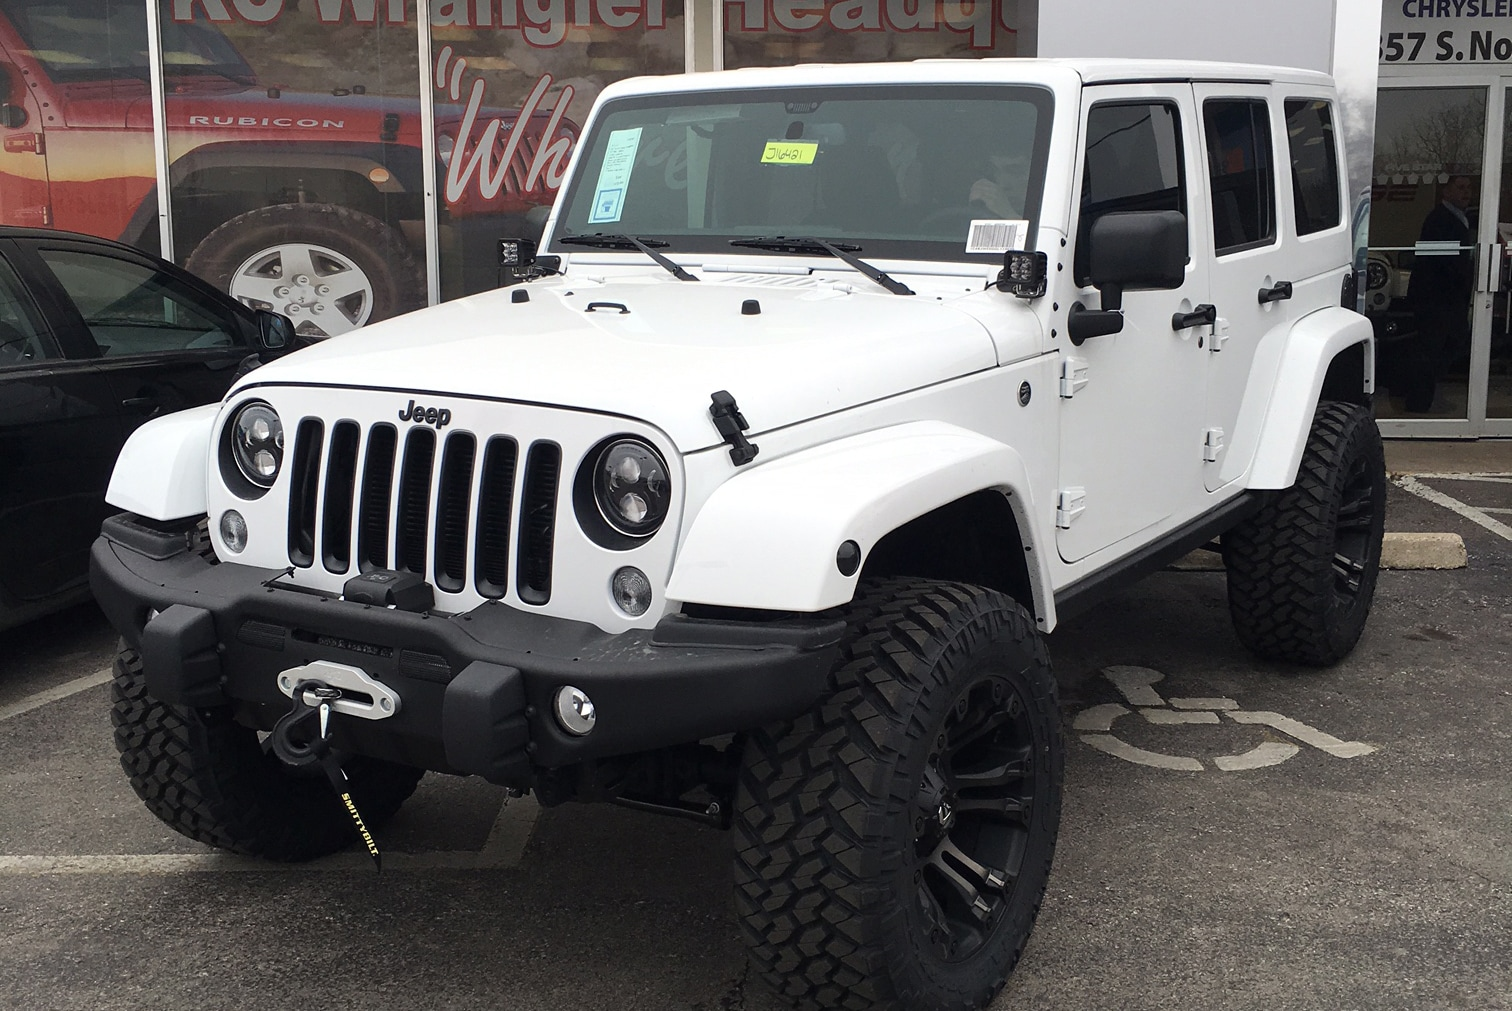 all-new white four-door jeep wrangler